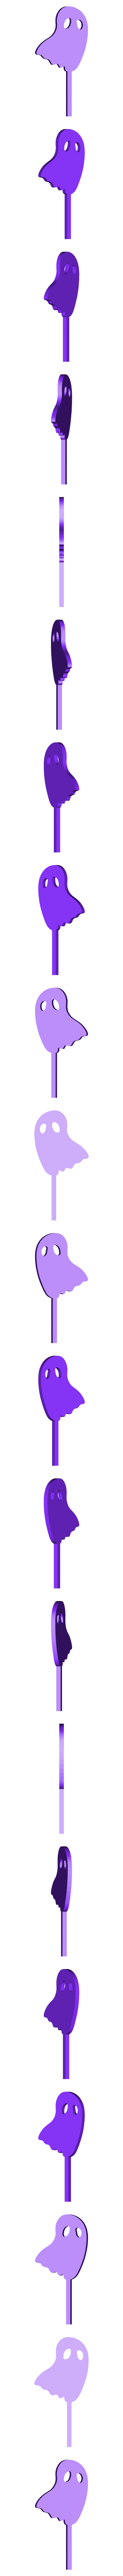 Topper - Ghost.stl Download STL file Night of the living muffins • 3D printing object, InSpace